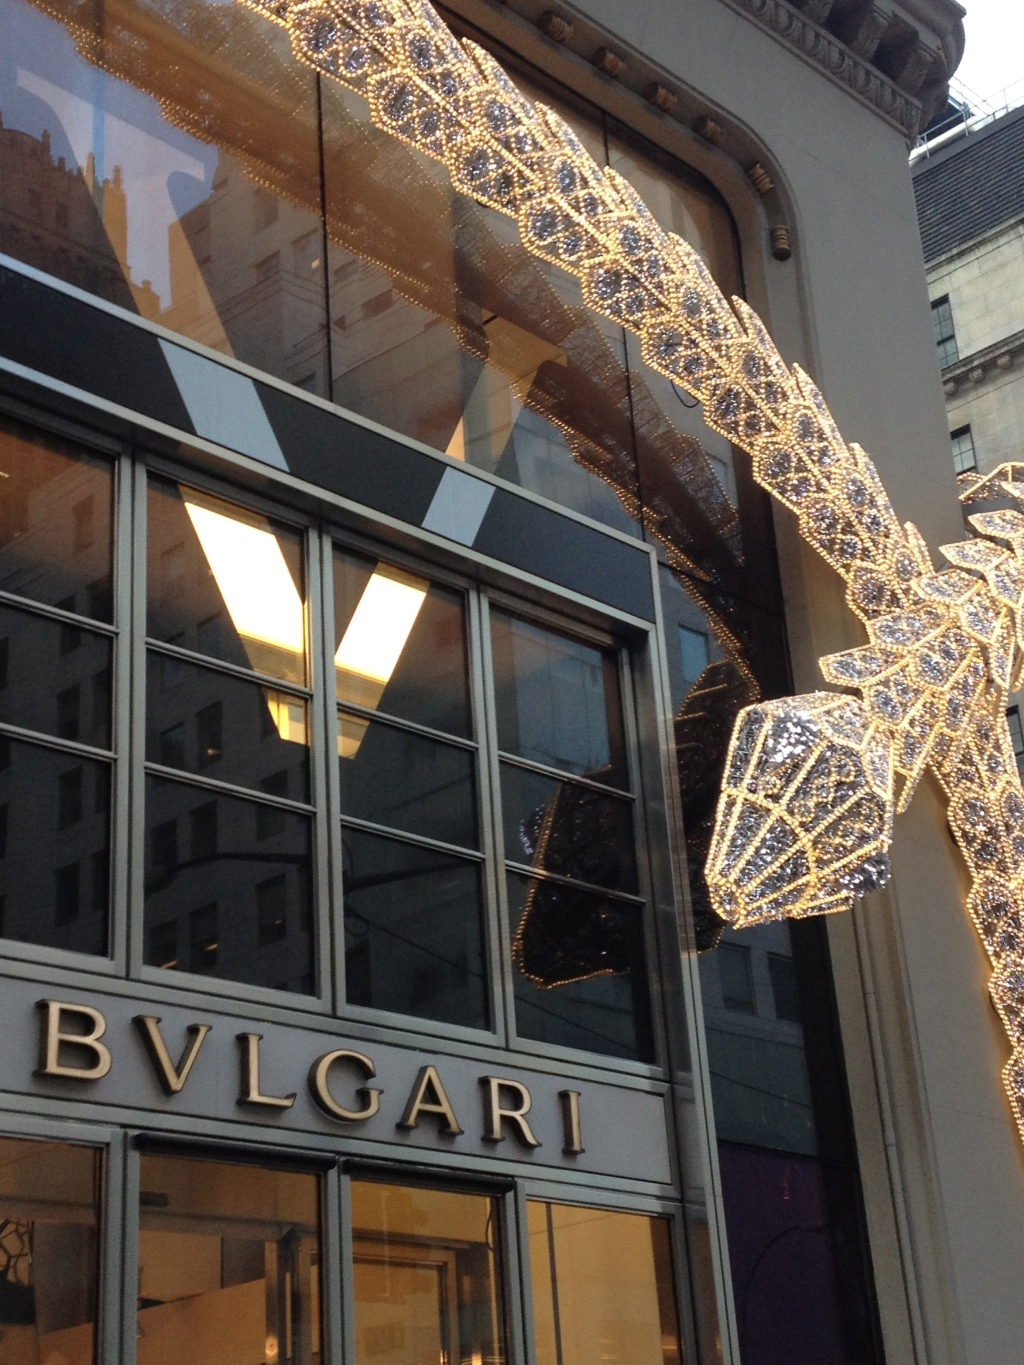 Now that's how I like my snakes...Bulgari store front, NYC.